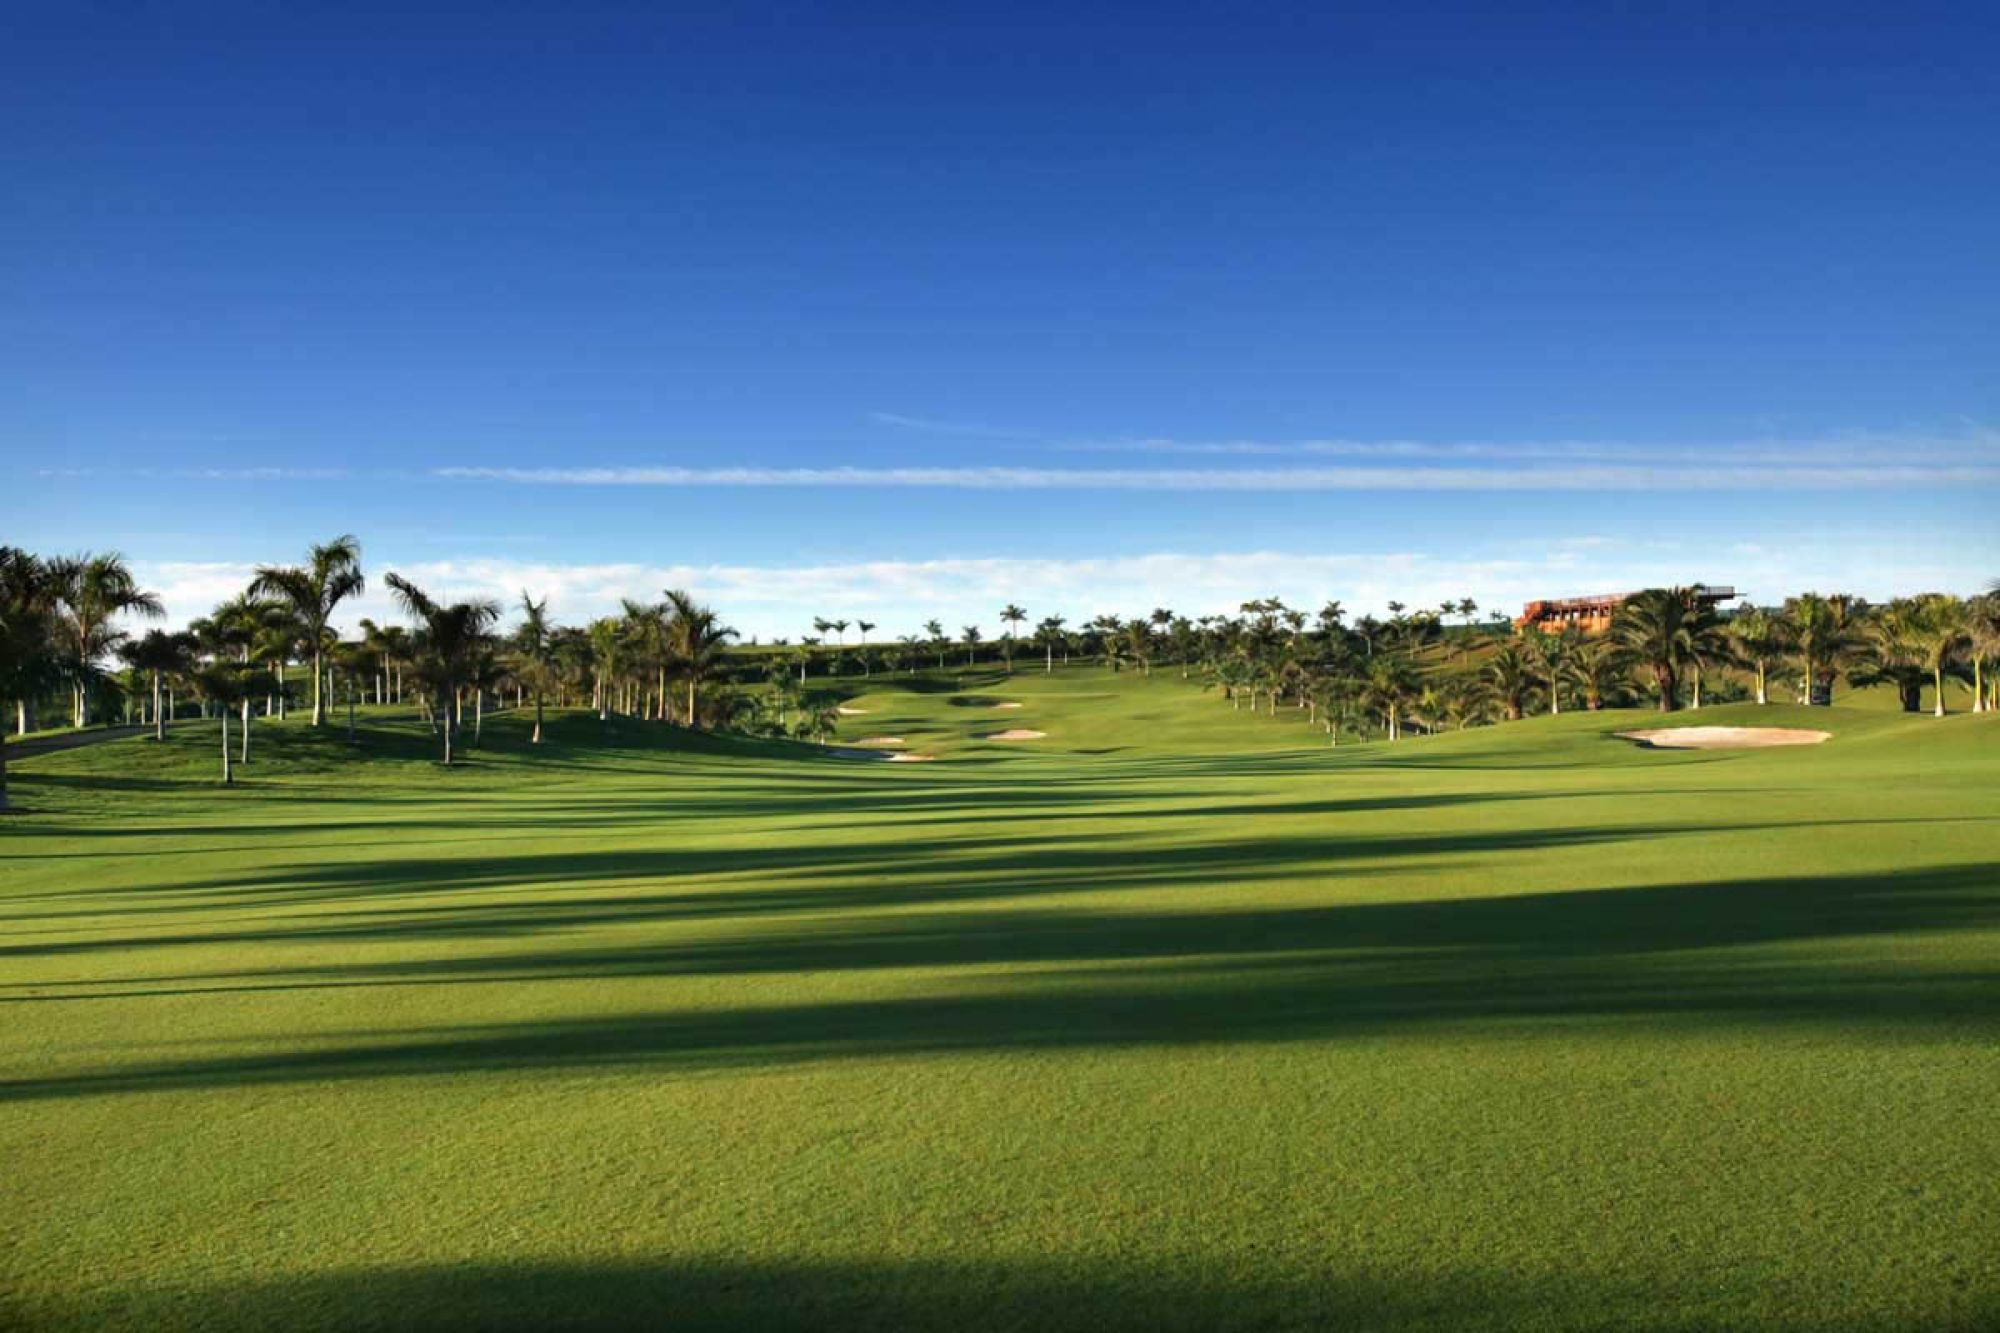 Meloneras Golf Course offers among the most popular golf course within Gran Canaria